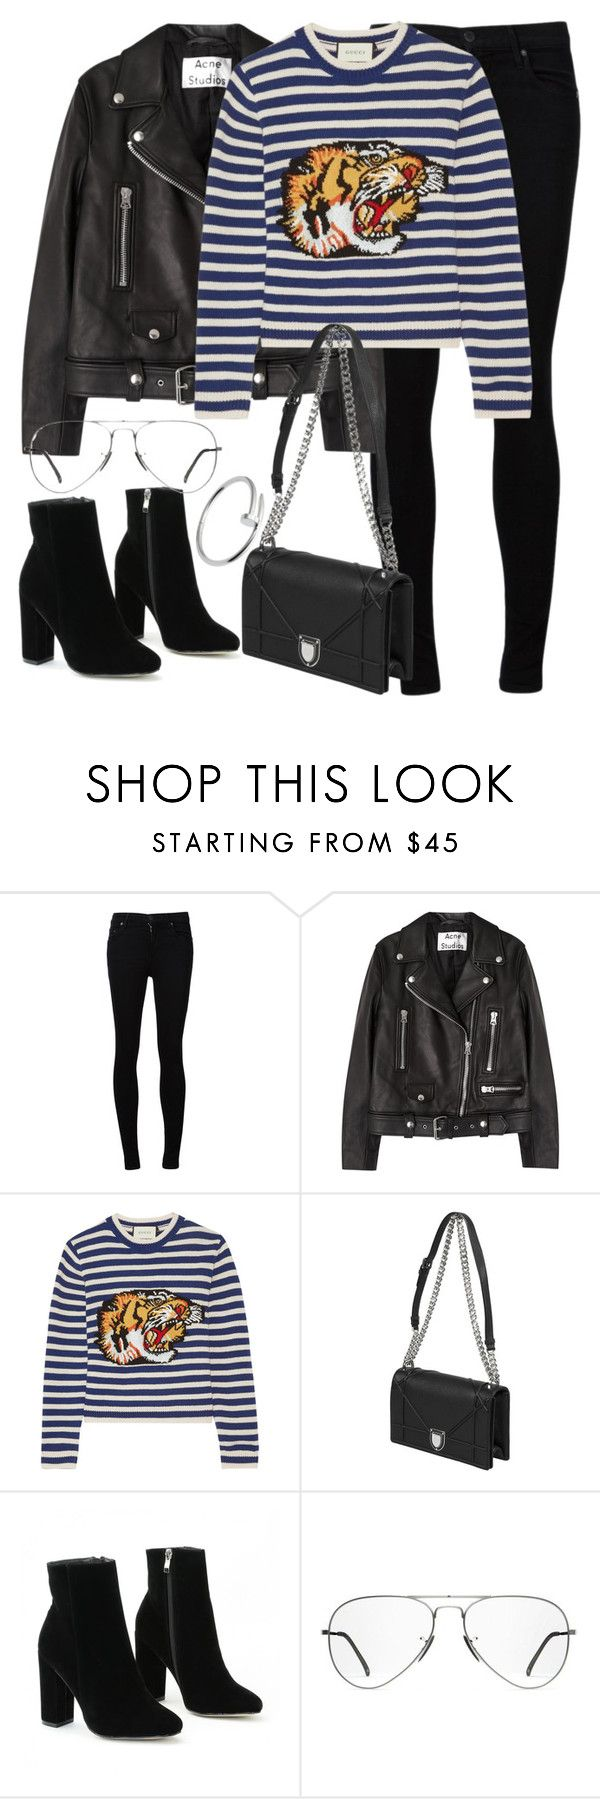 """Untitled #3003"" by elenaday on Polyvore featuring Citizens of Humanity, Acne Studios, Gucci, Ray-Ban and Cartier"